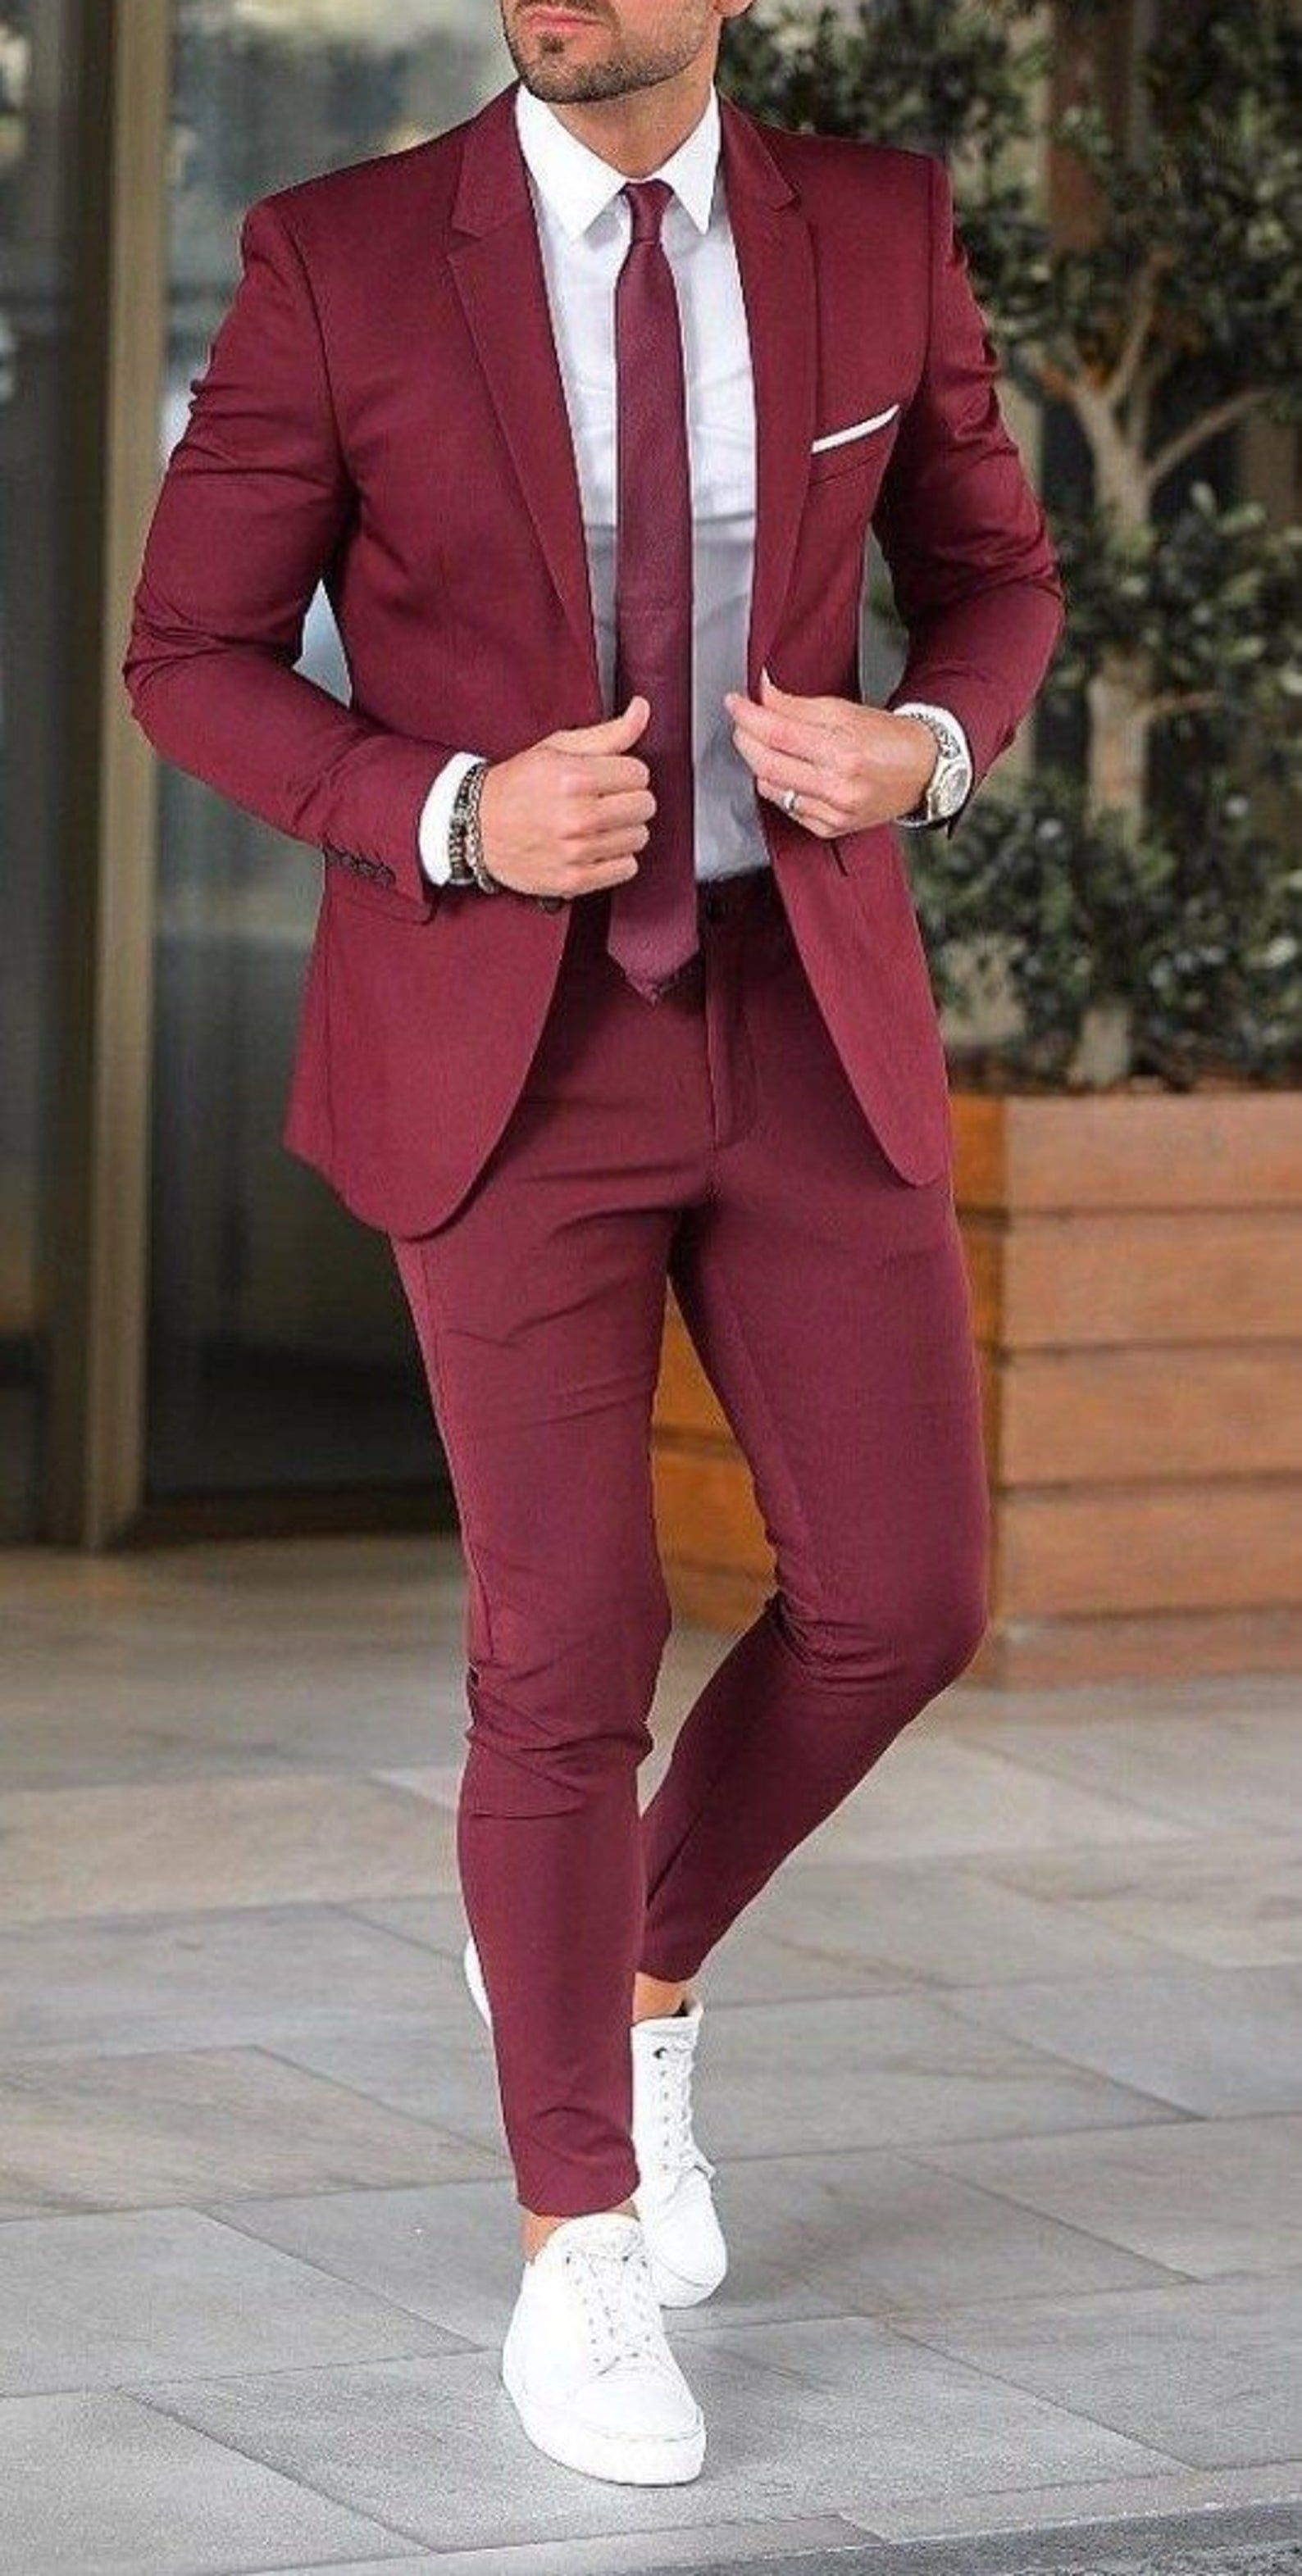 Mens Suit Formal Summer Suit Burgundy 2 Piece Suit Slim Fit Suits Beach Wedding Suits Men Suits Dinner Suits Wedding Groom Wear Mens Fashion Suits Formal Mens Casual Outfits Summer Fashion